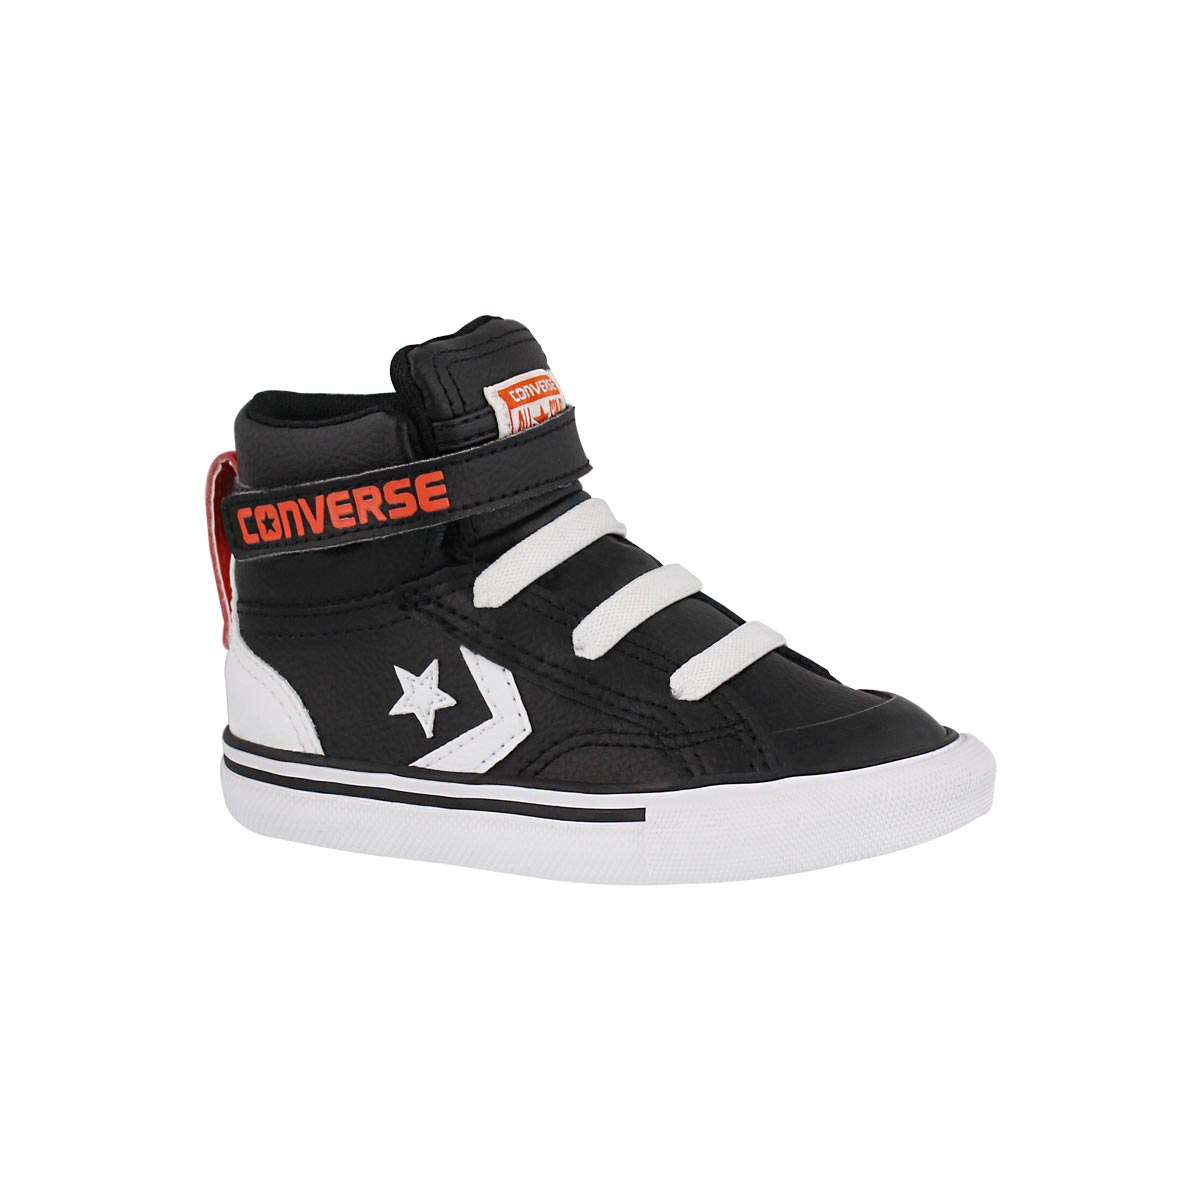 Infants' PRO BLAZE blk/wht/red sneakers